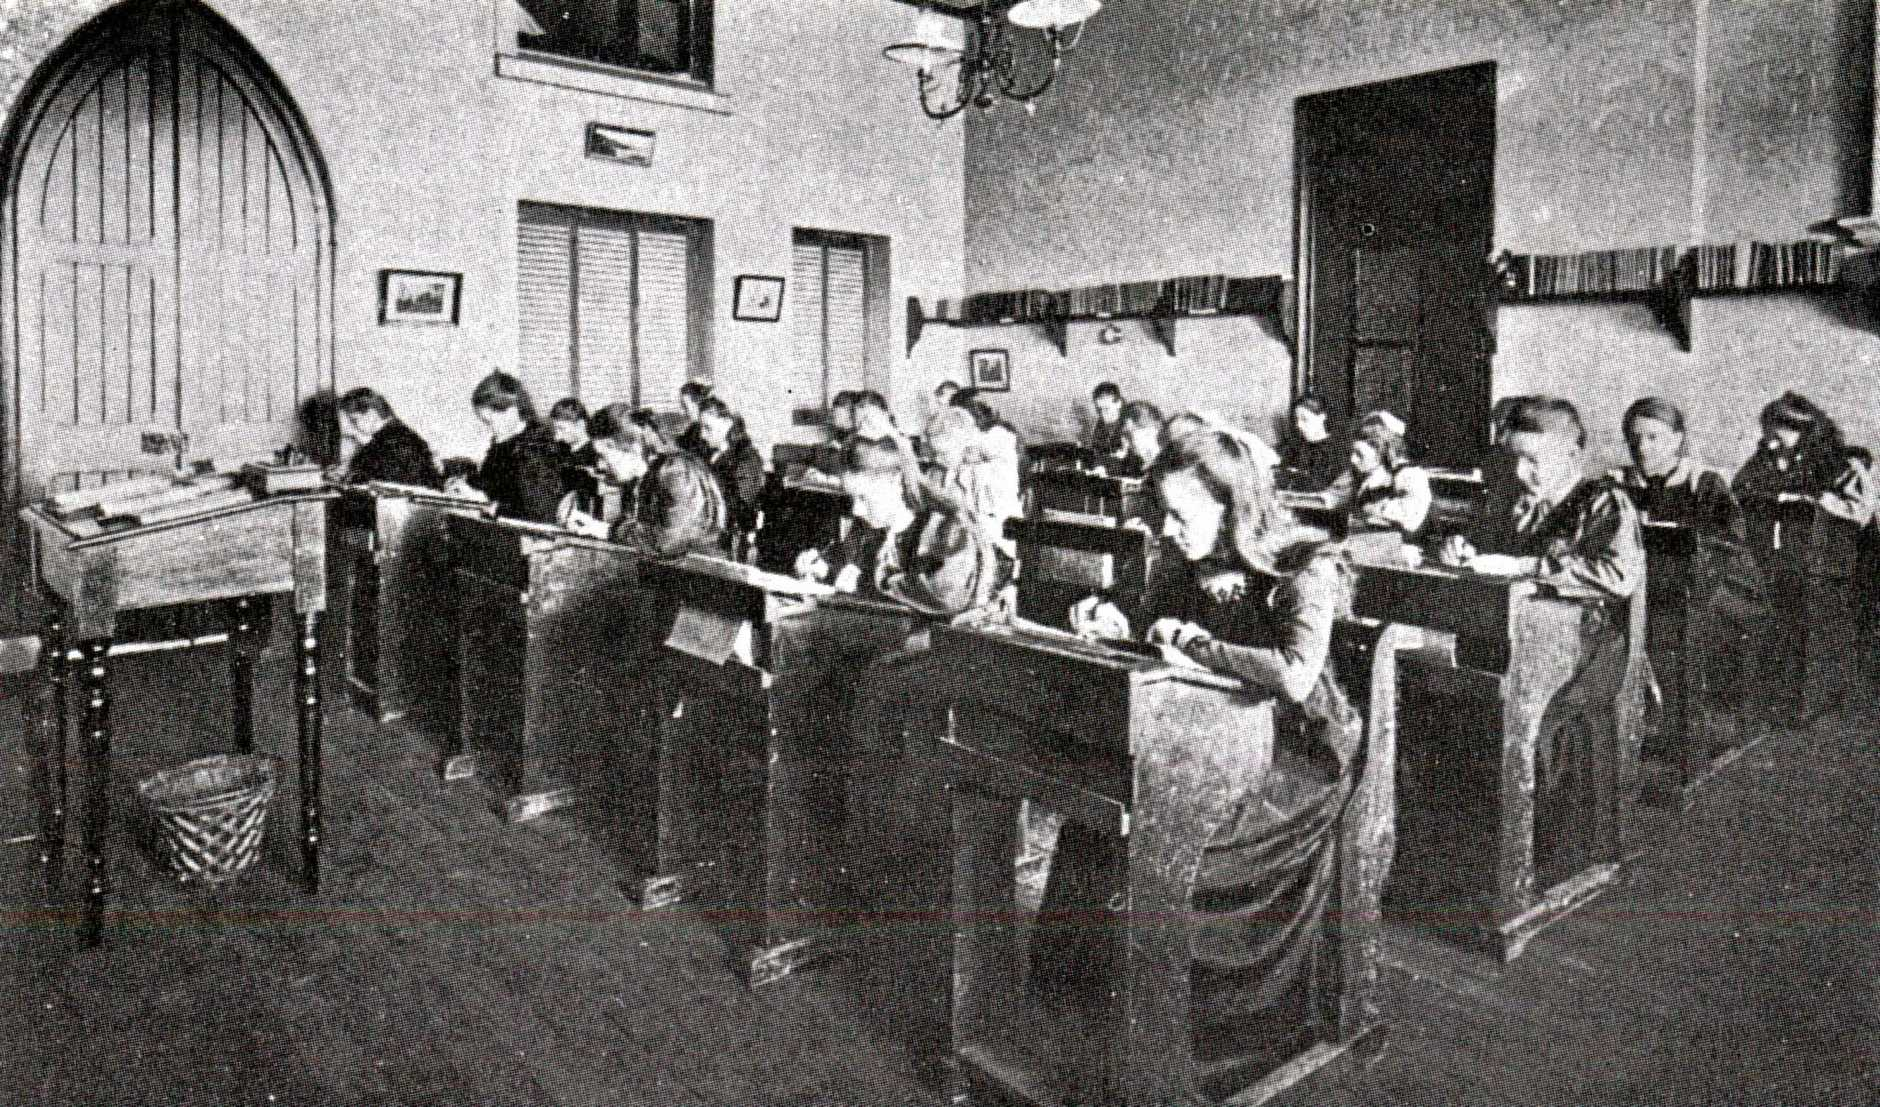 Classroom in the original school building circa 1900.